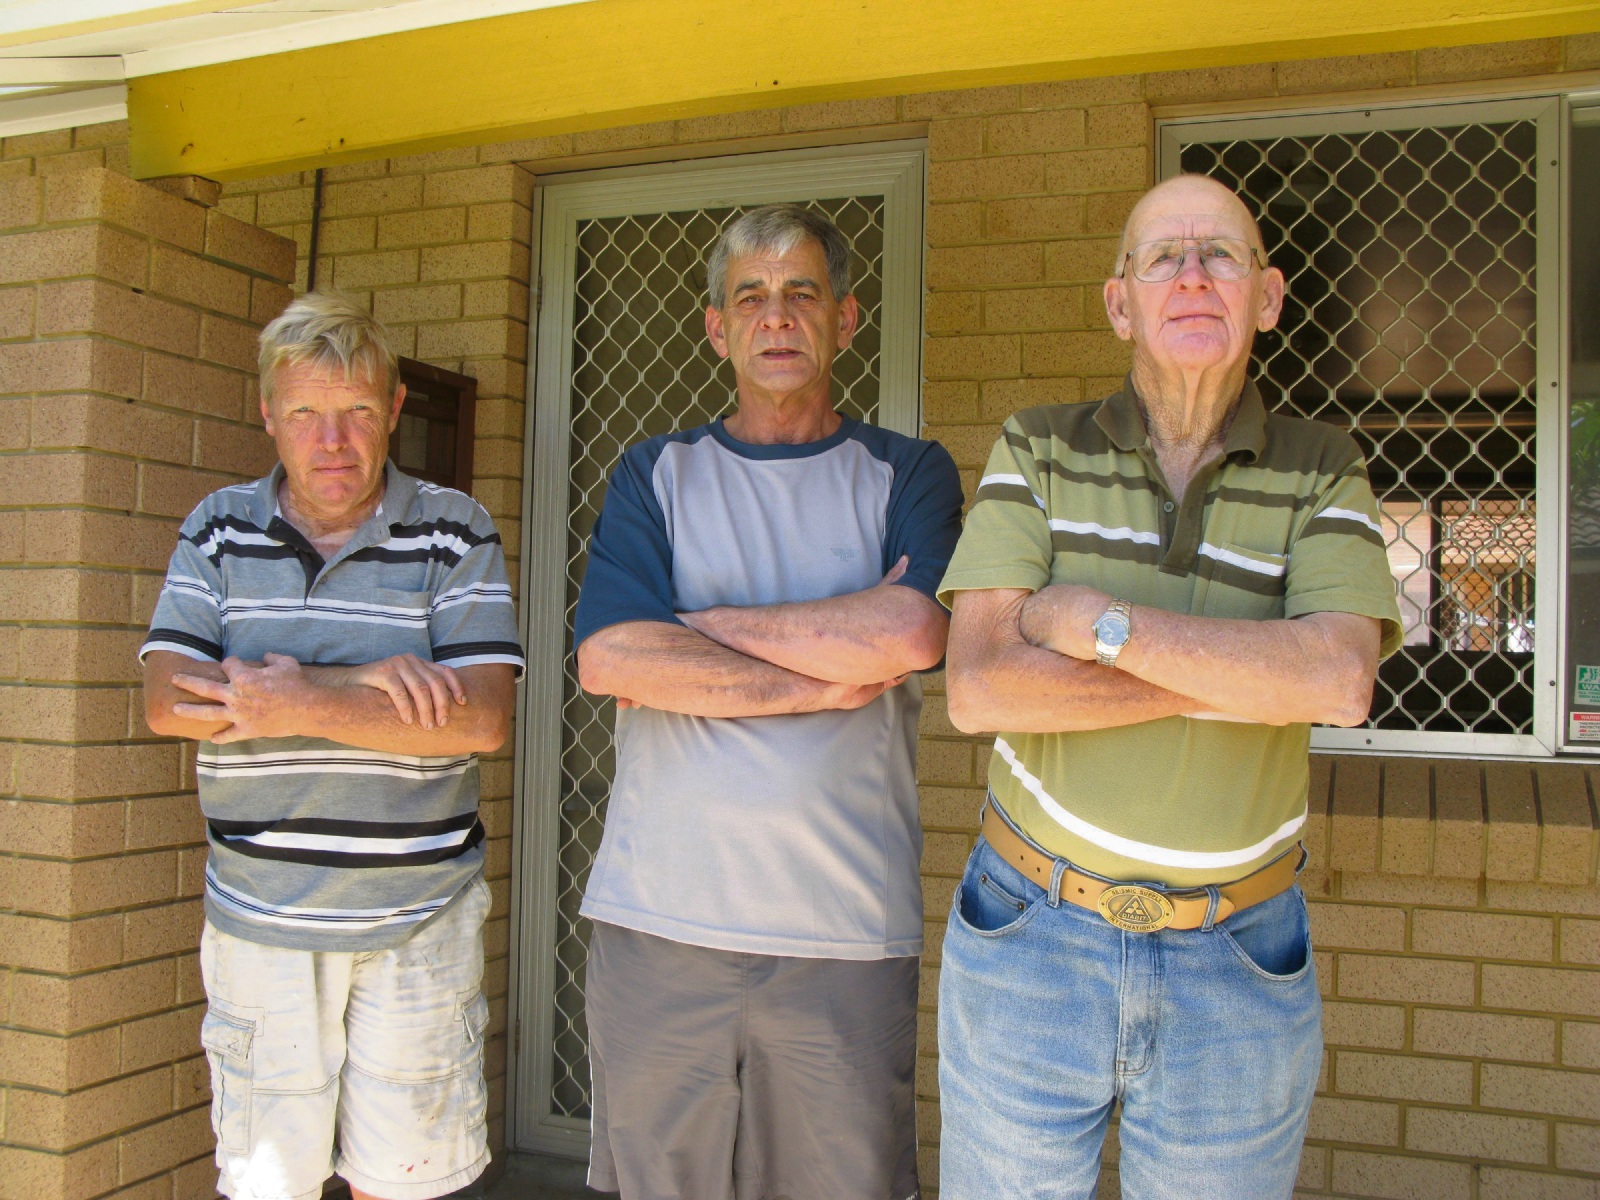 Dudley Park residents Norman Bell, John Jansen and Keith Shaw outside the vacant unit they claim is a source of a disgusting smell and their vermin problem.